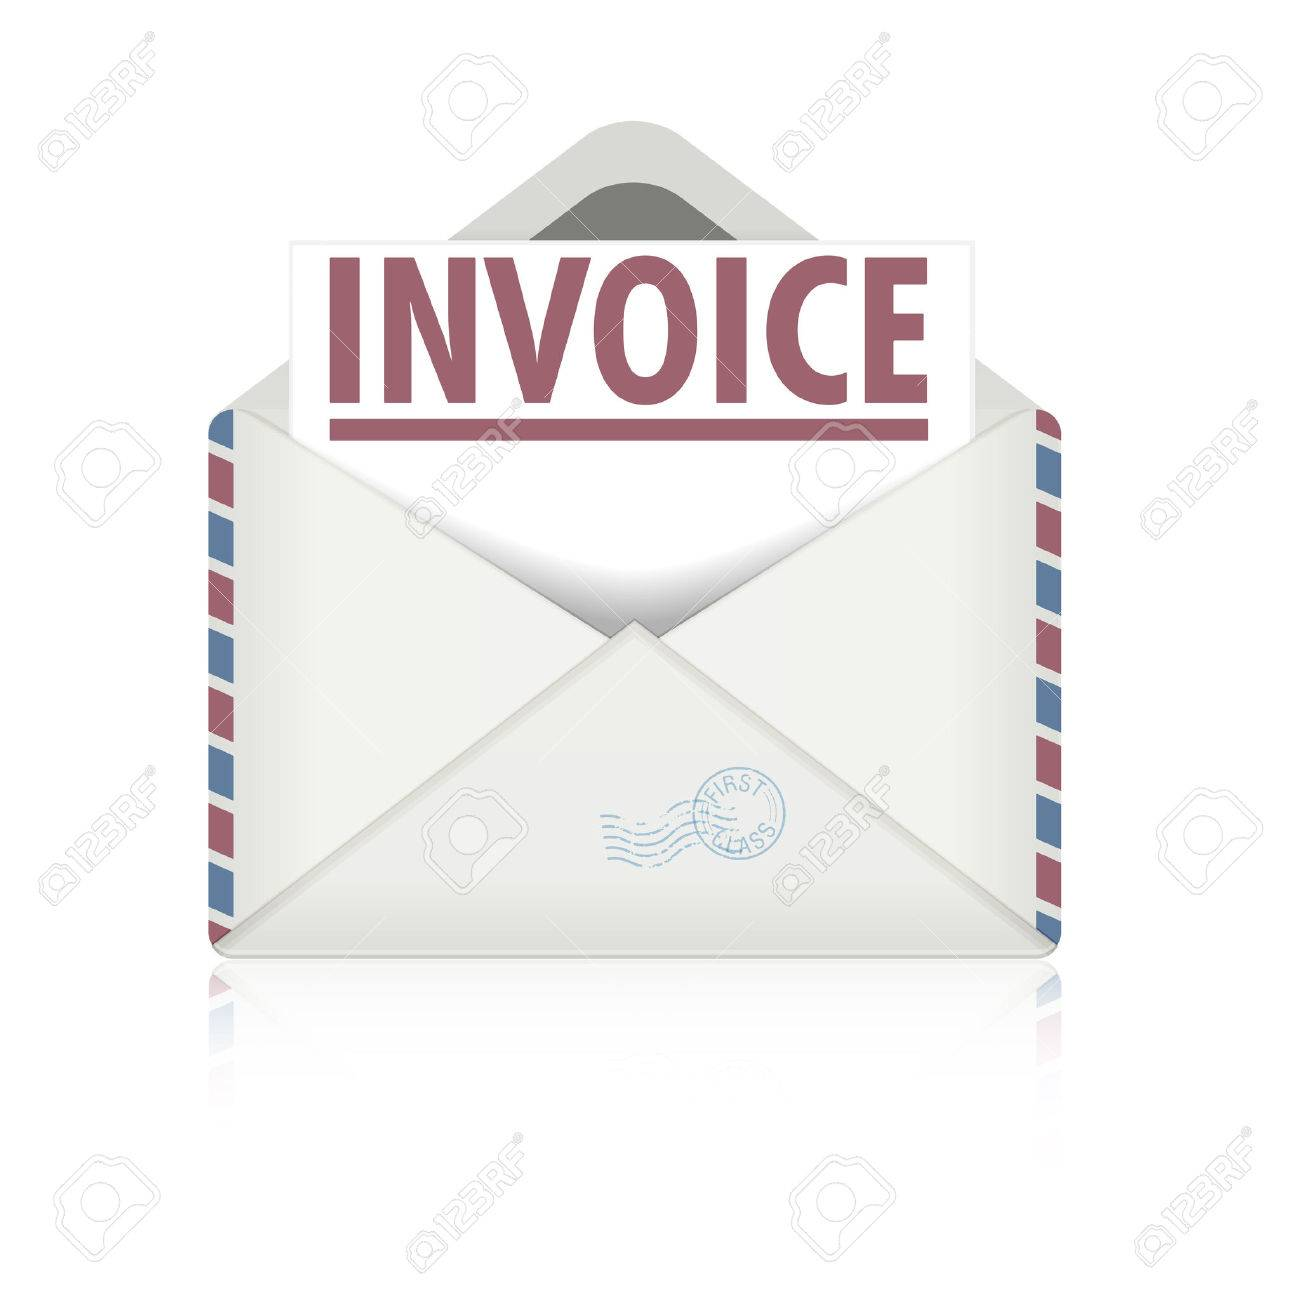 Invoice Price Audi Q5  Receipt Stock Vector Illustration And Royalty Free Receipt  Best Way To Organize Receipts For Taxes Pdf with Paid Invoice Template Receipt Detailed Illustration Of An Open Envelope With Invoice Letter  Eps Vector Small Business Invoicing Software Free Pdf